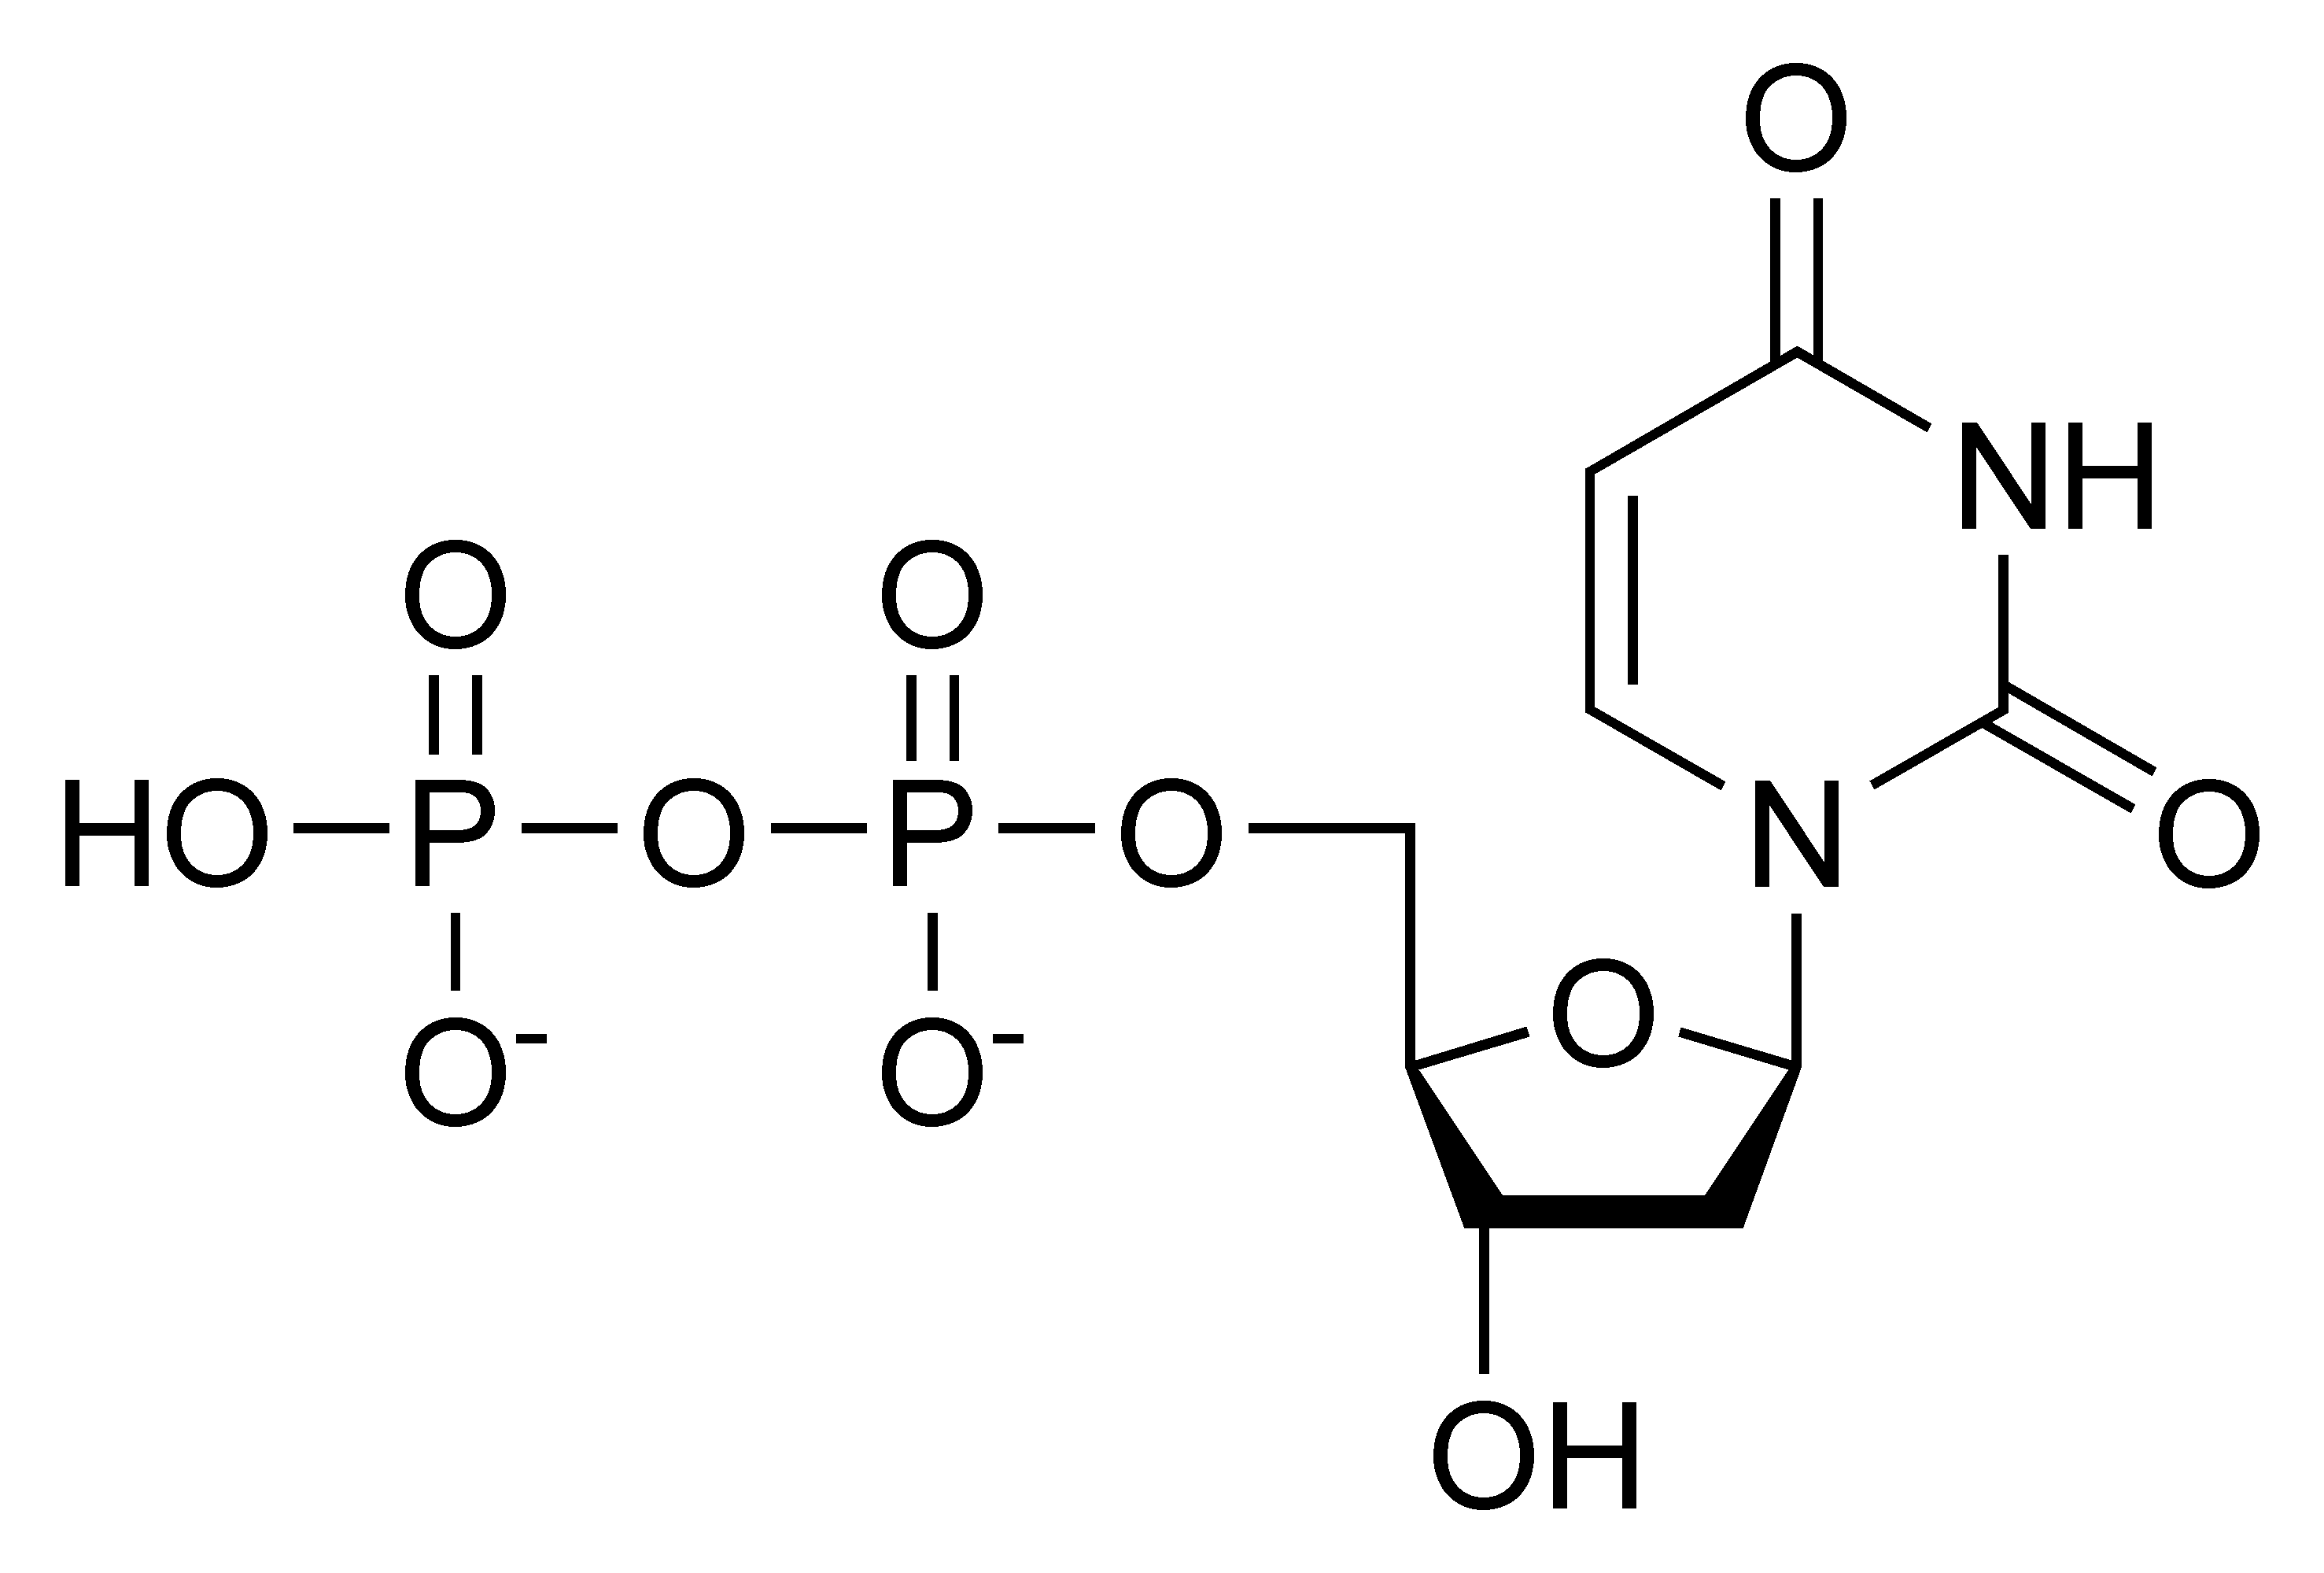 Chemical structure of deoxyuridine diphosphate